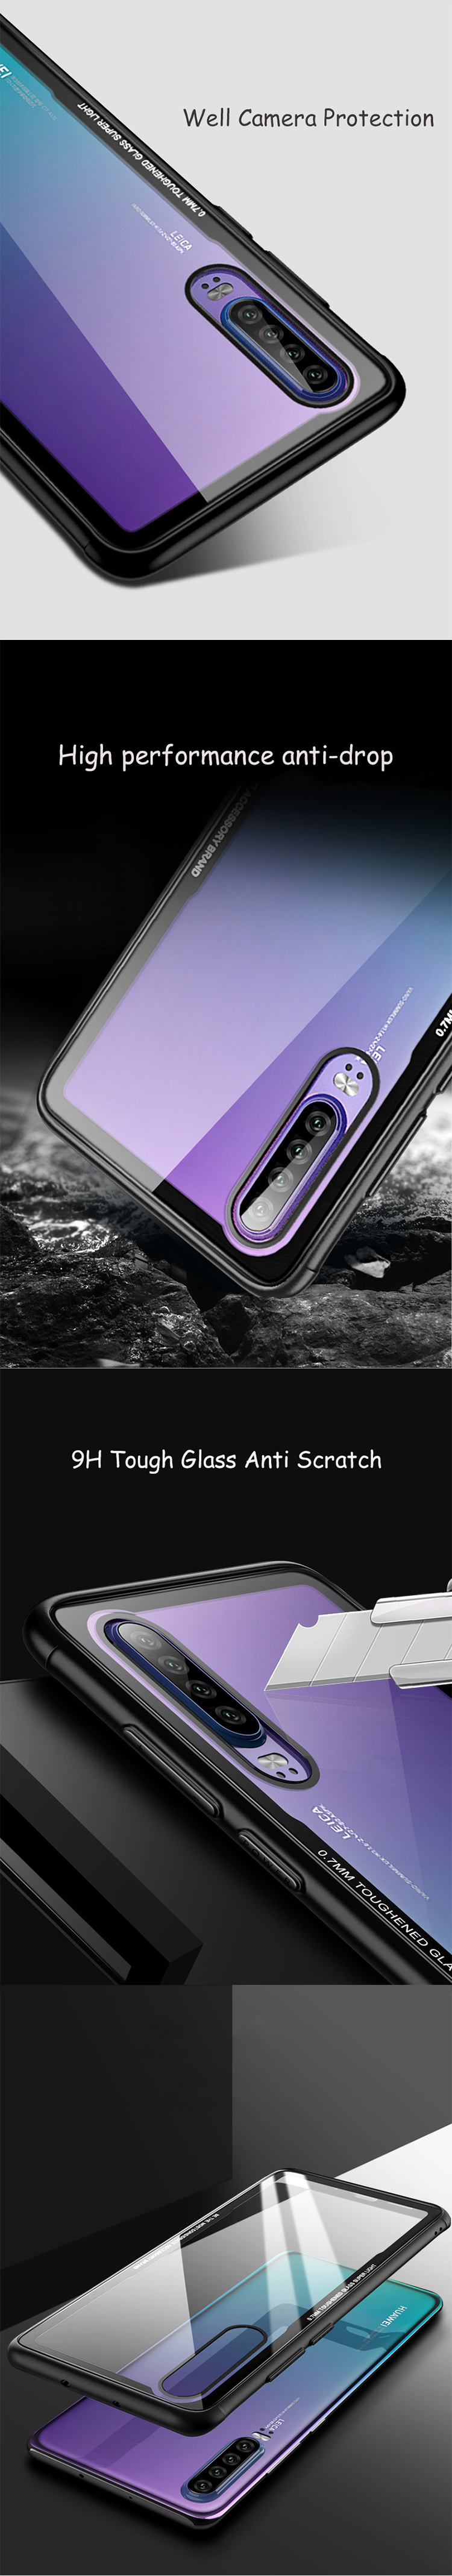 Feisman Waterproof Hard Shockproof Tempered Glass Phone Cover for Huawei Phone Case P30 Pro P20 Glass